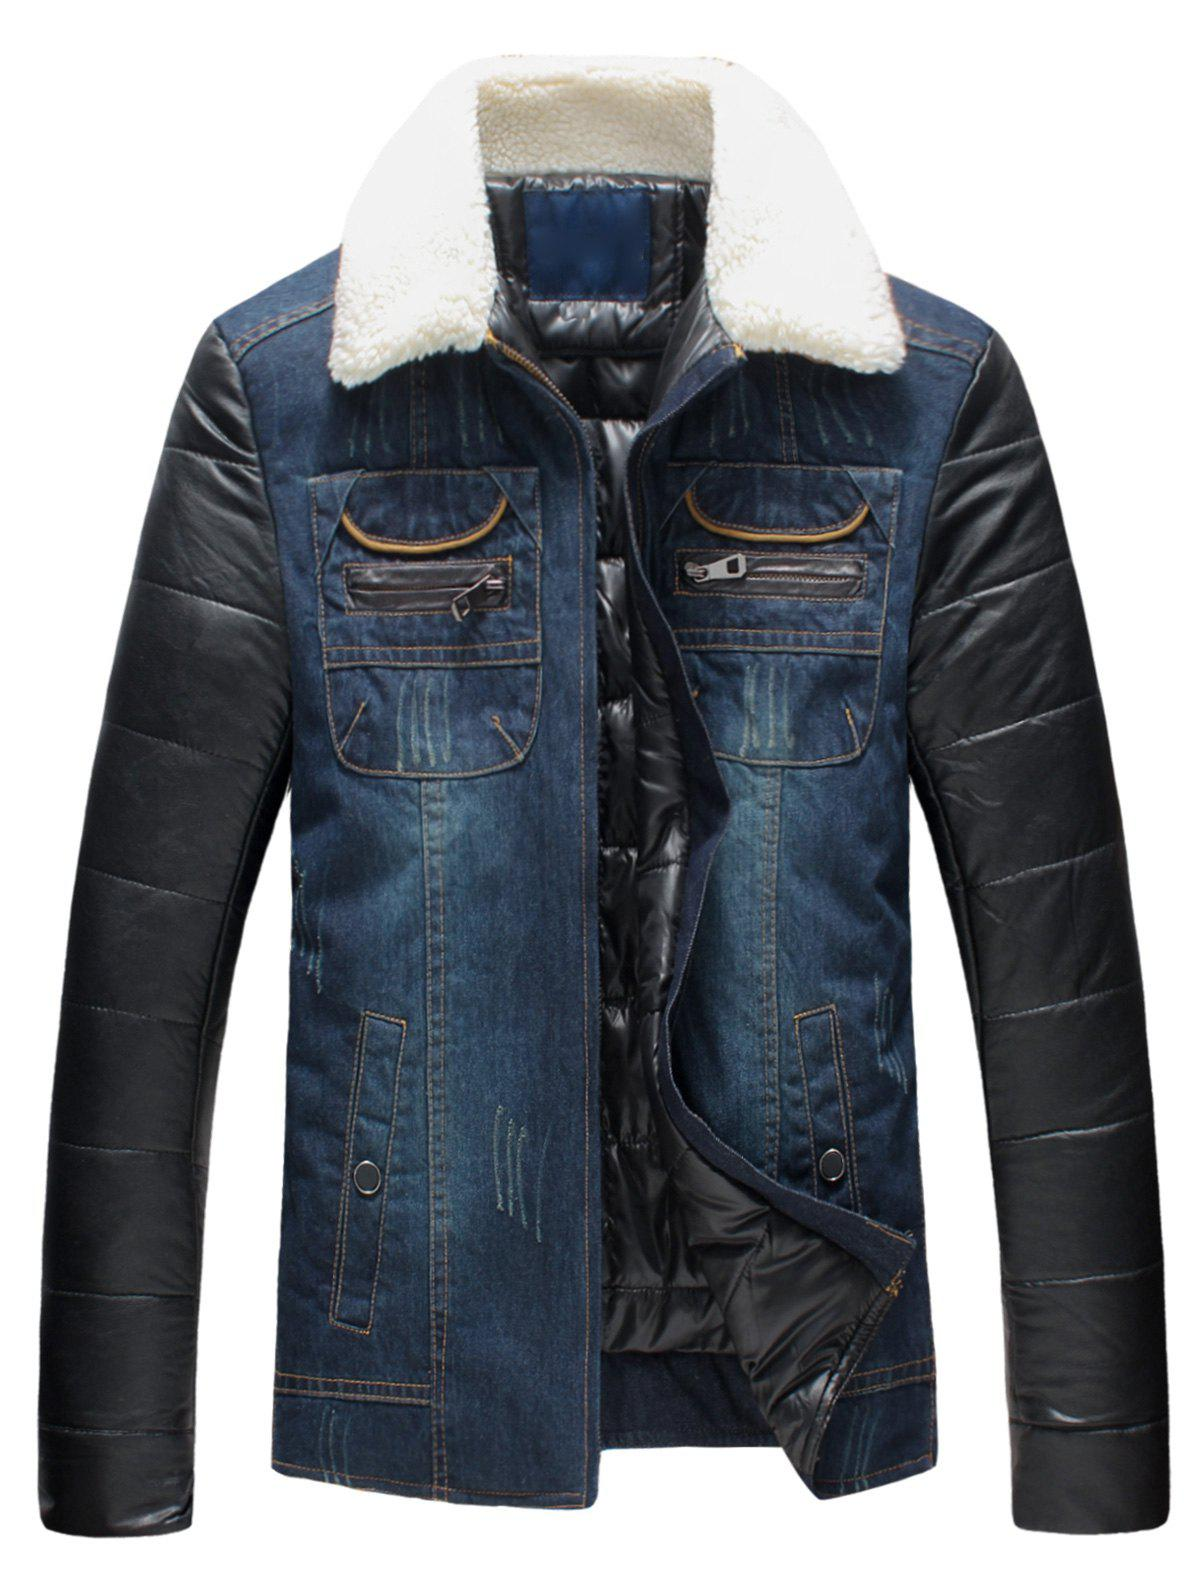 PU Leather Panel Faux Fur Collar Padded Denim Jacket camo insert faux fur trim denim jacket